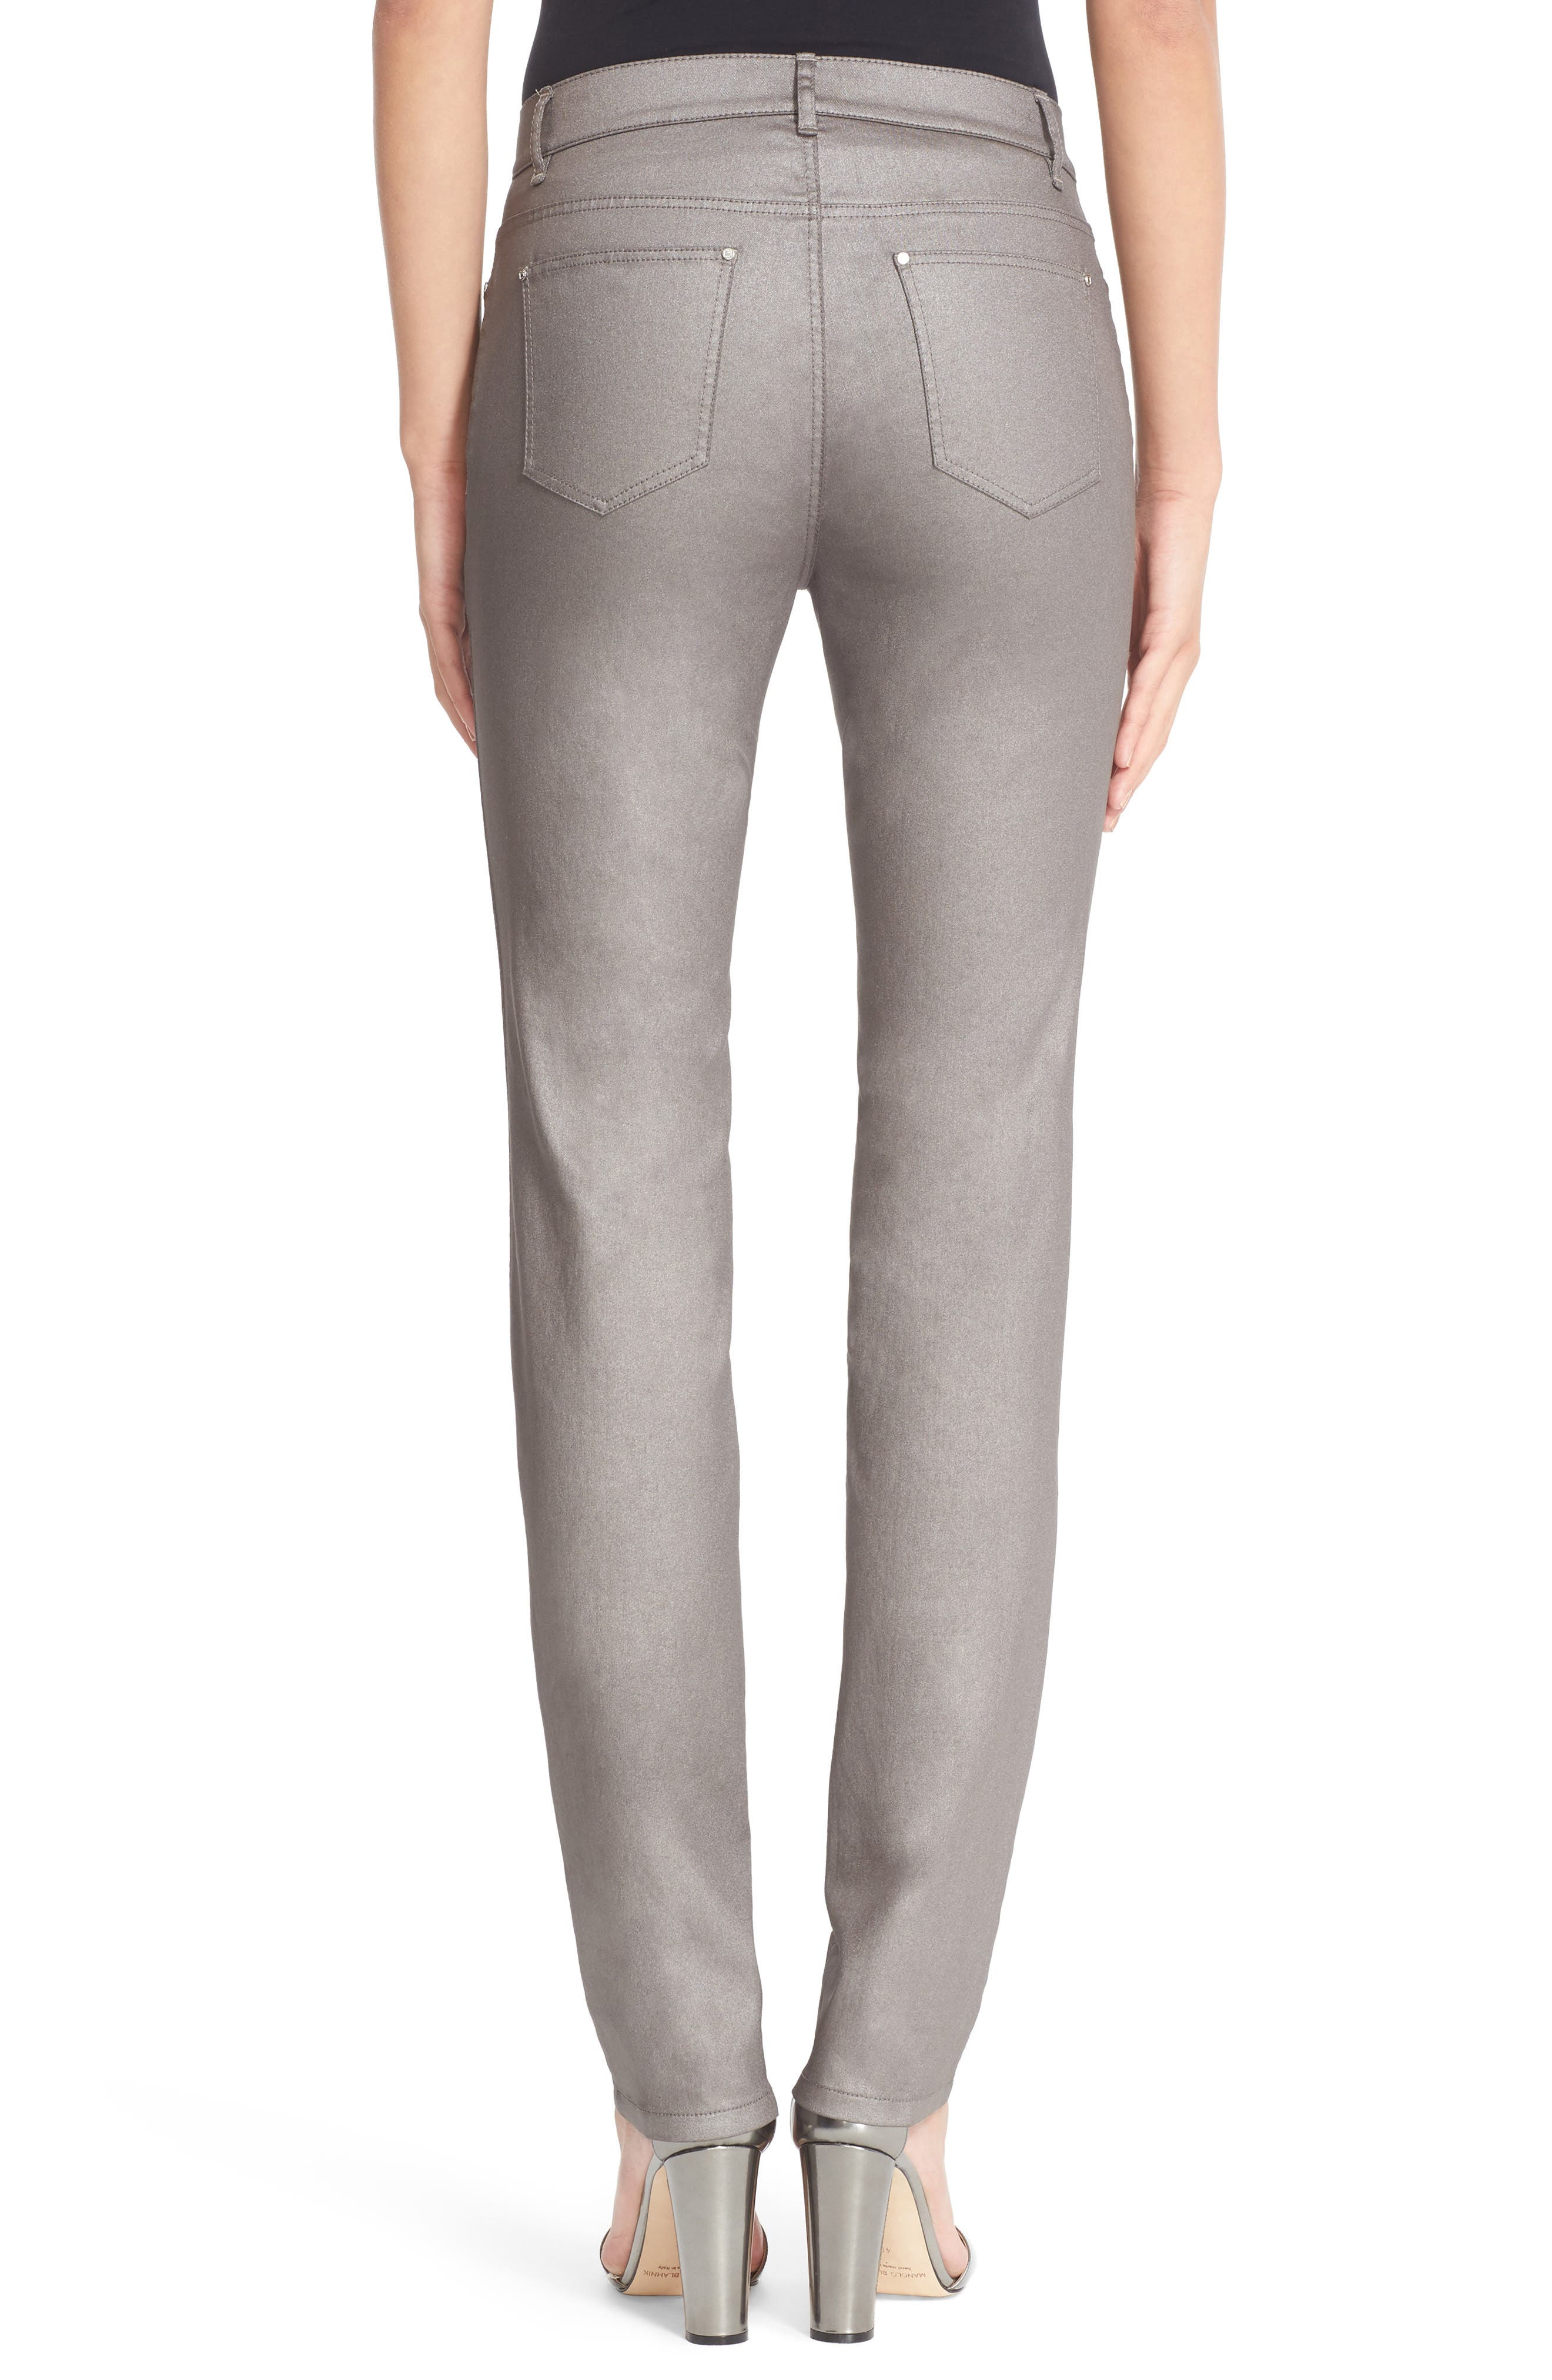 LAFAYETTE 148 NEW YORK, Curvy Fit Skinny Jeans, Alternate thumbnail 2, color, SILVER